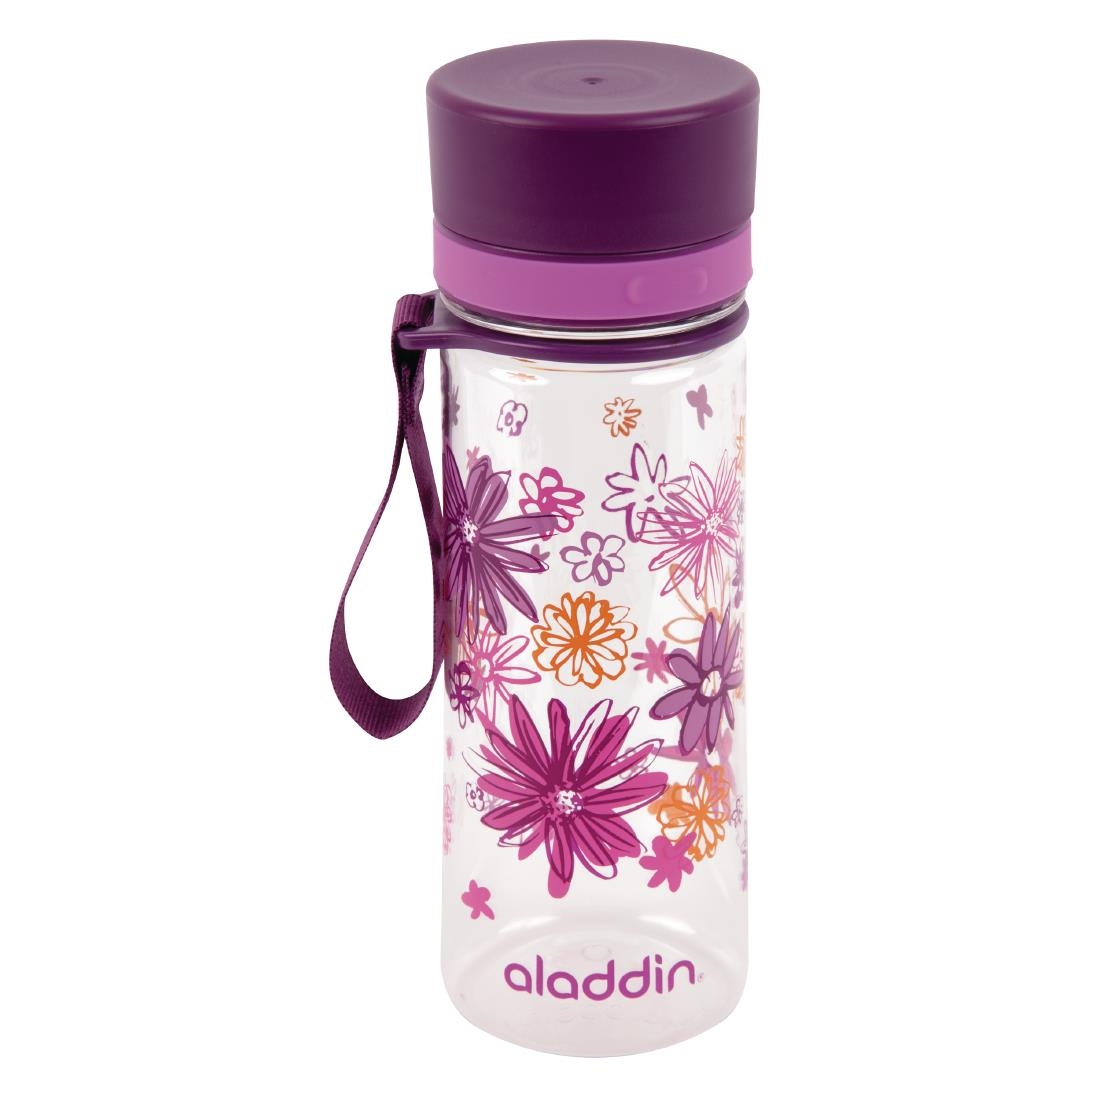 Image of Aladdin Aveo Reusable Water Bottle Purple Graphics 350ml / 12oz